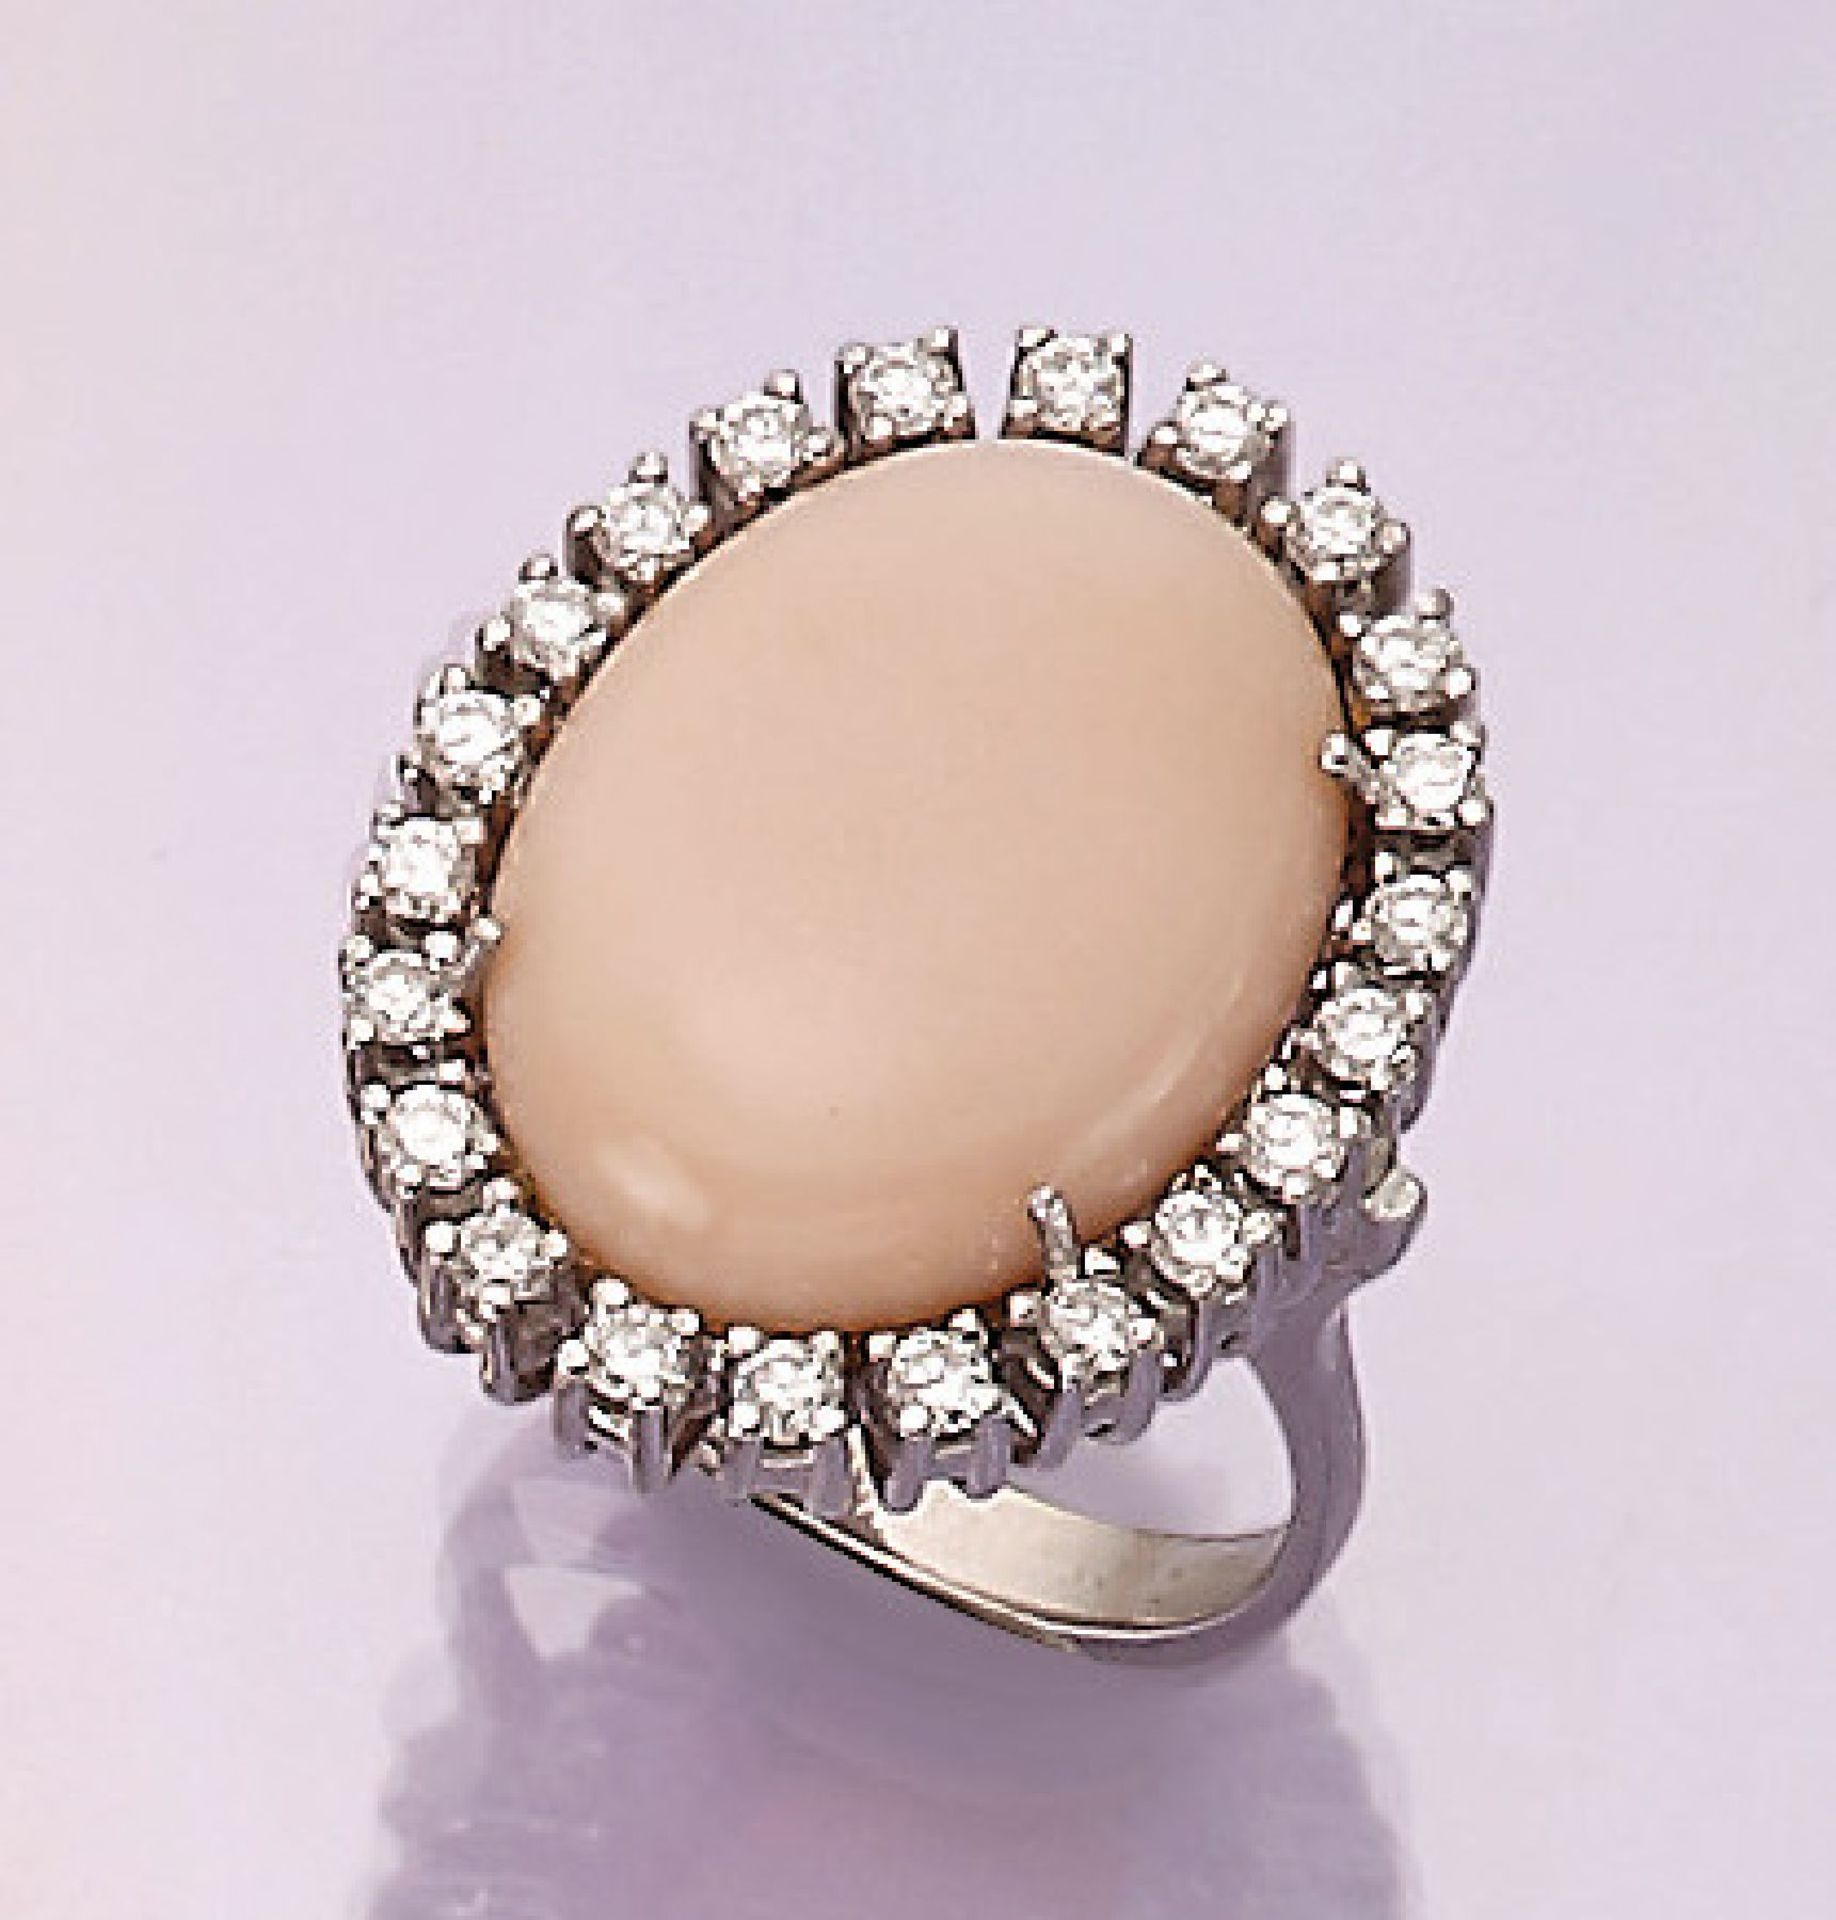 Los 31549 - 18 kt gold ring with angel skin coral and brilliants , WG 750/000, oval angel skin coral cabochon,